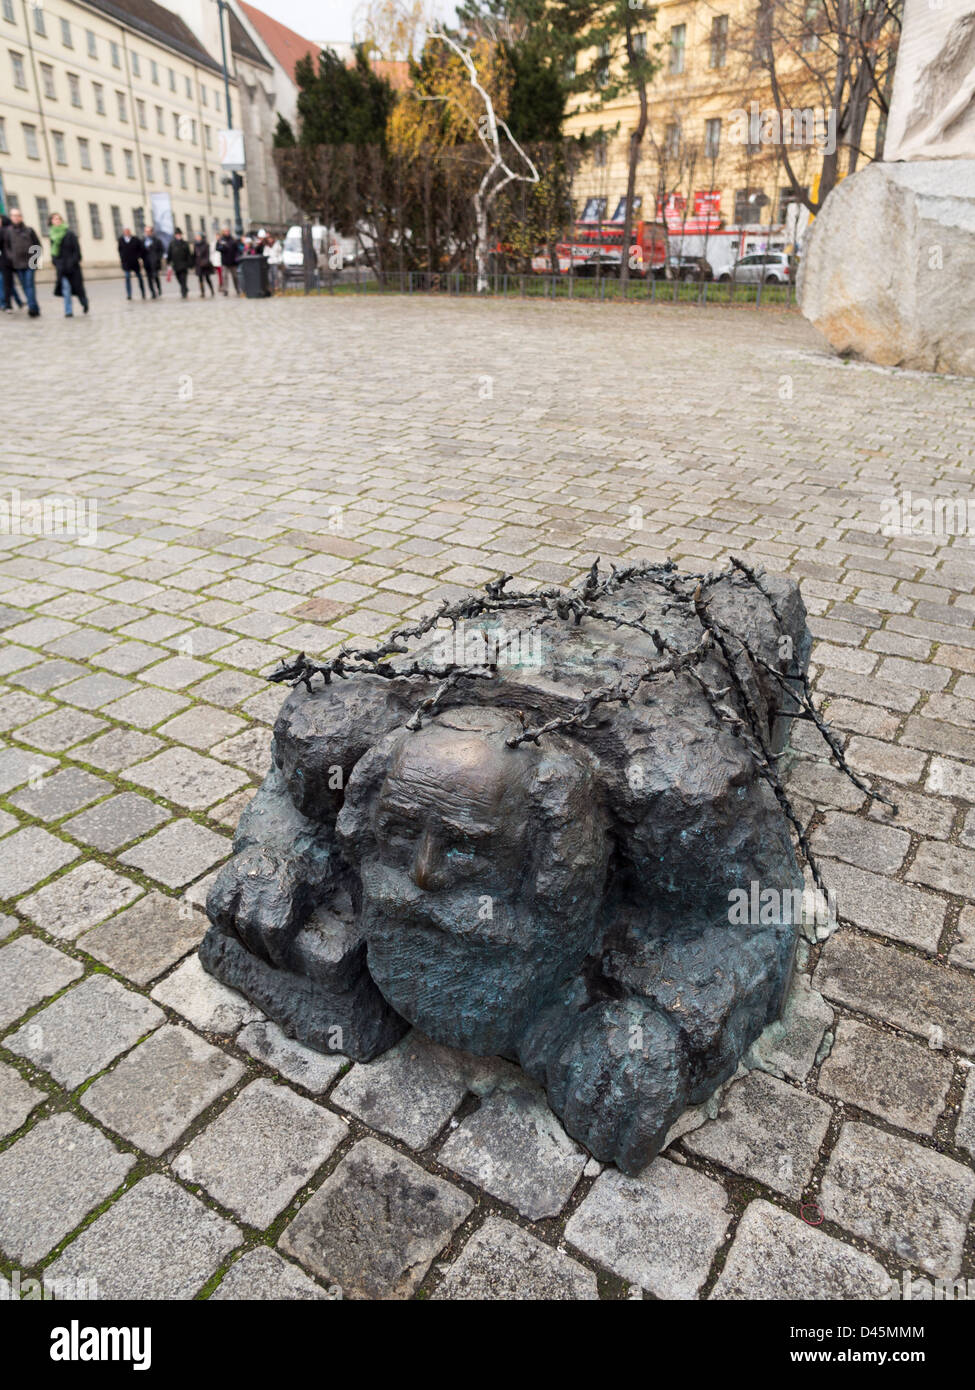 Scrubbing the Pavement detail. Sculpture of an old jewish man made to scrub the streets of Vienna with a hand brush. - Stock Image